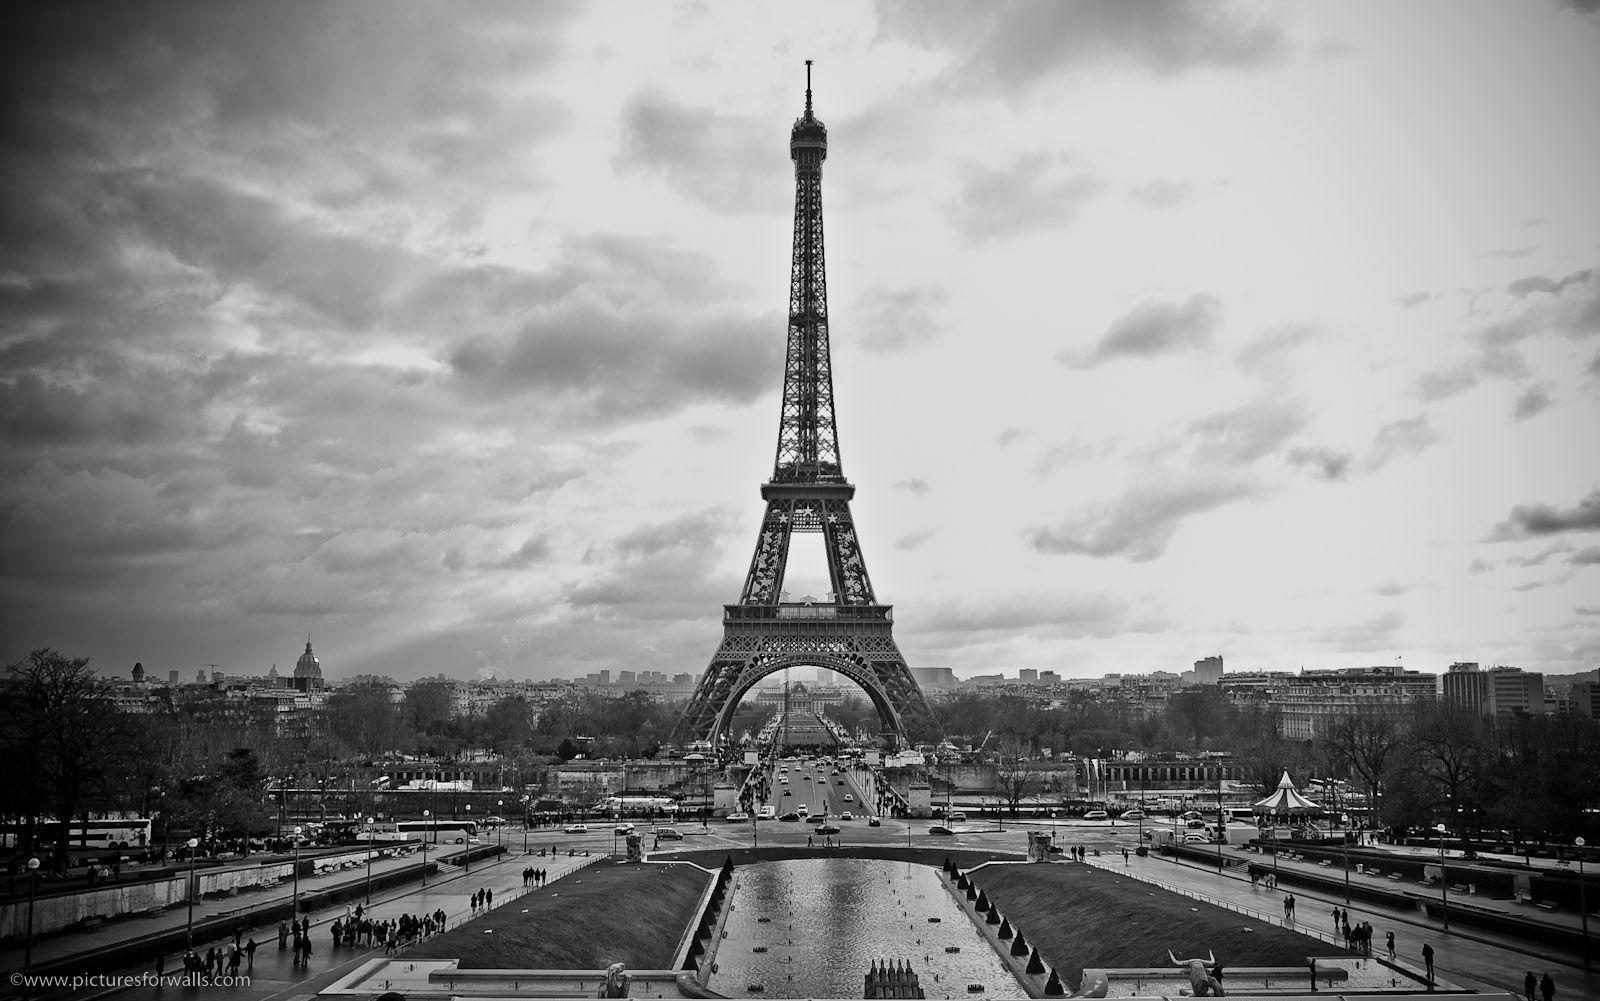 paris desktop wallpapers, high resolution widescreen desktop wallpaper